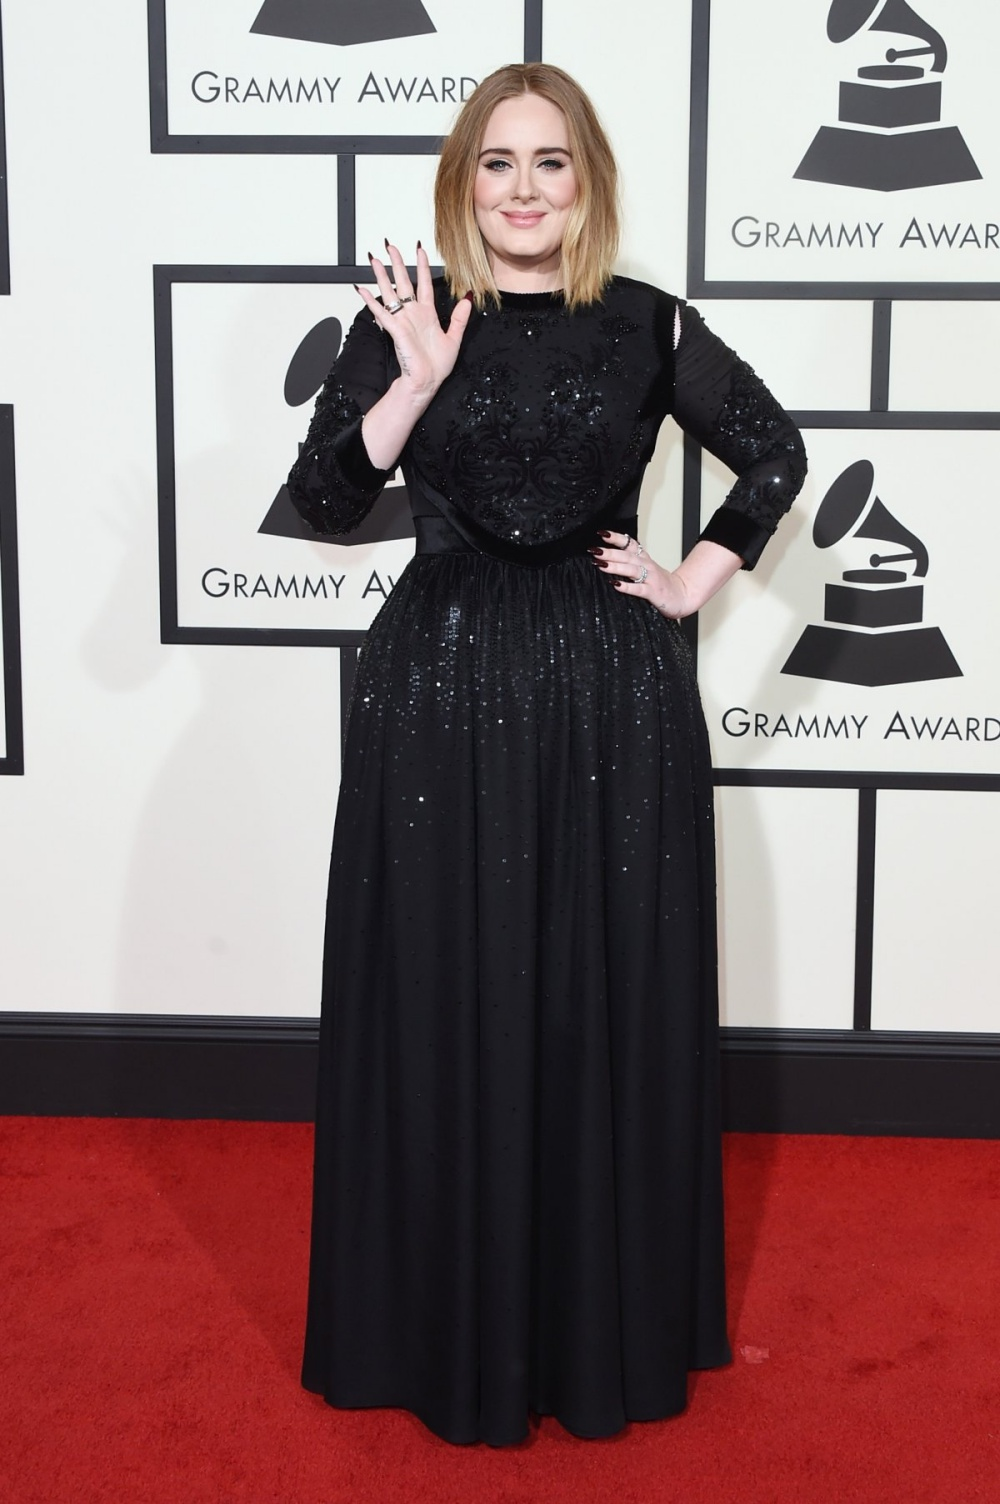 Adele Grammys 2016 Best Dressed Celebrities